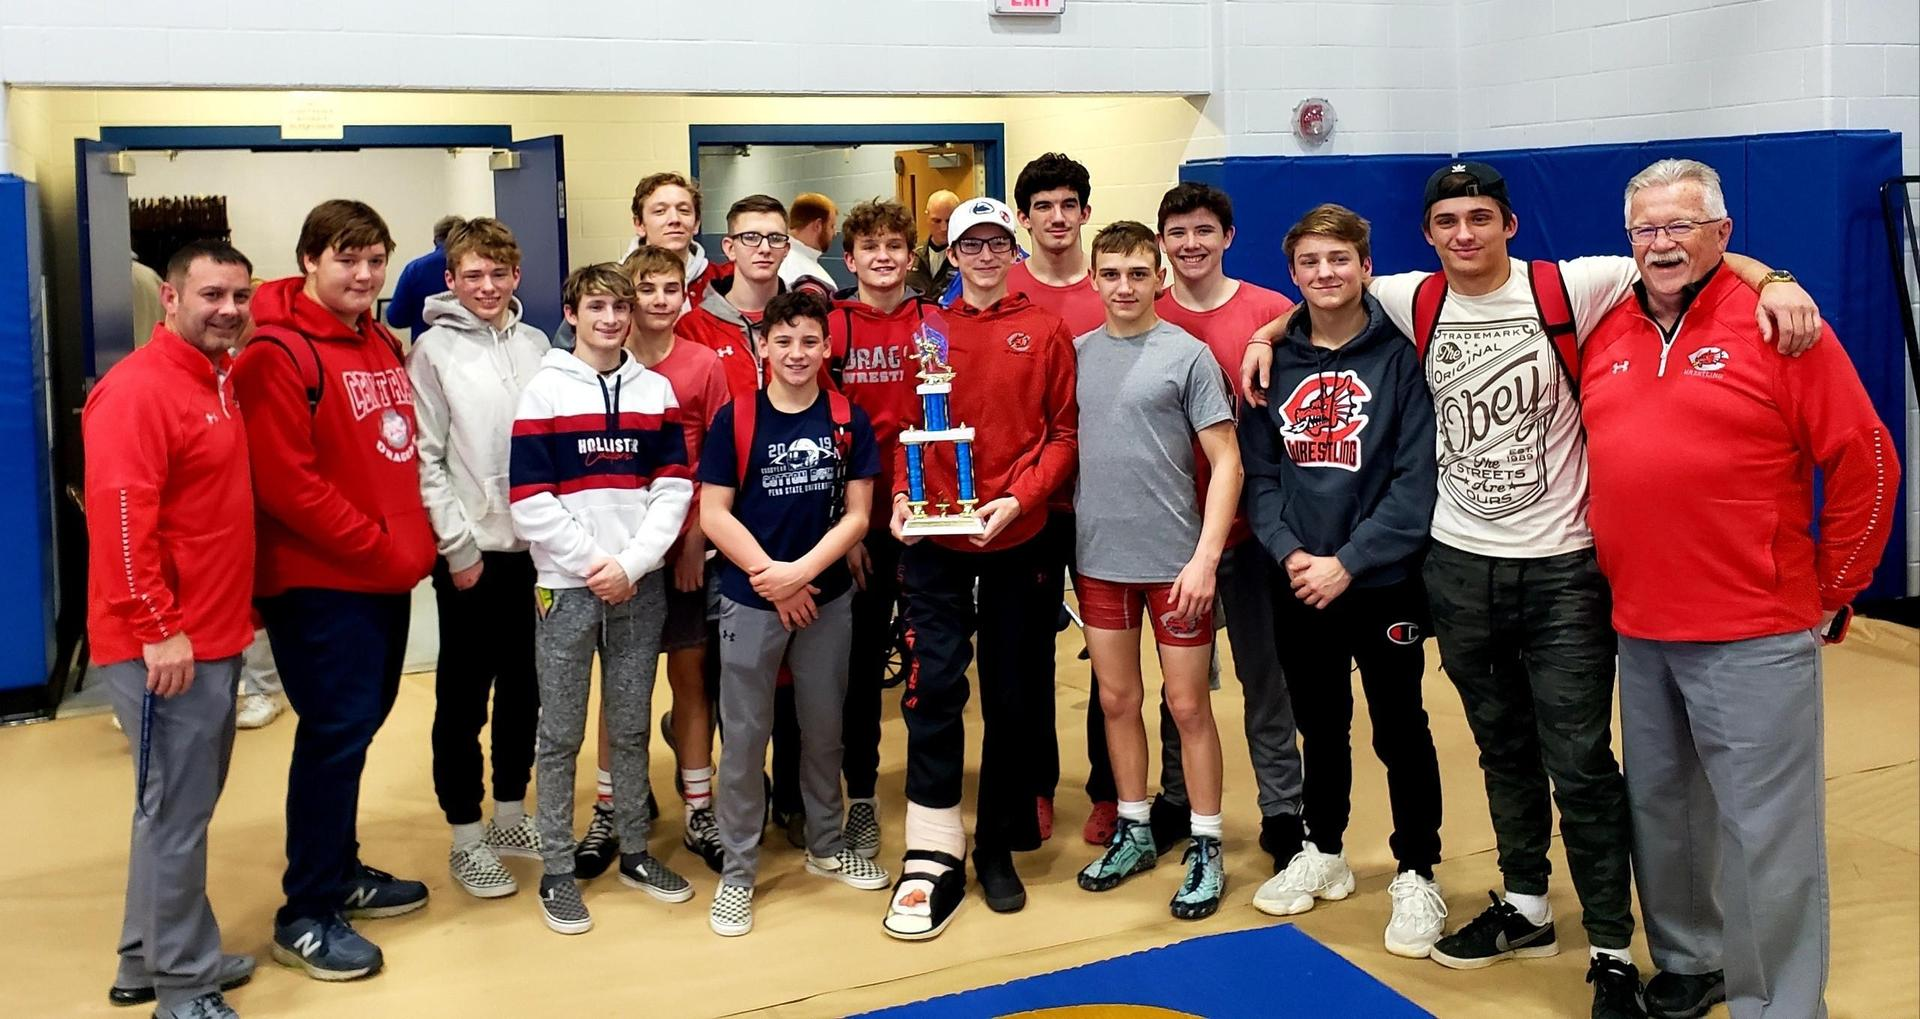 On 2/8/20 the CHS Varsity Wrestling team won the Claysburg Kimmel Duals